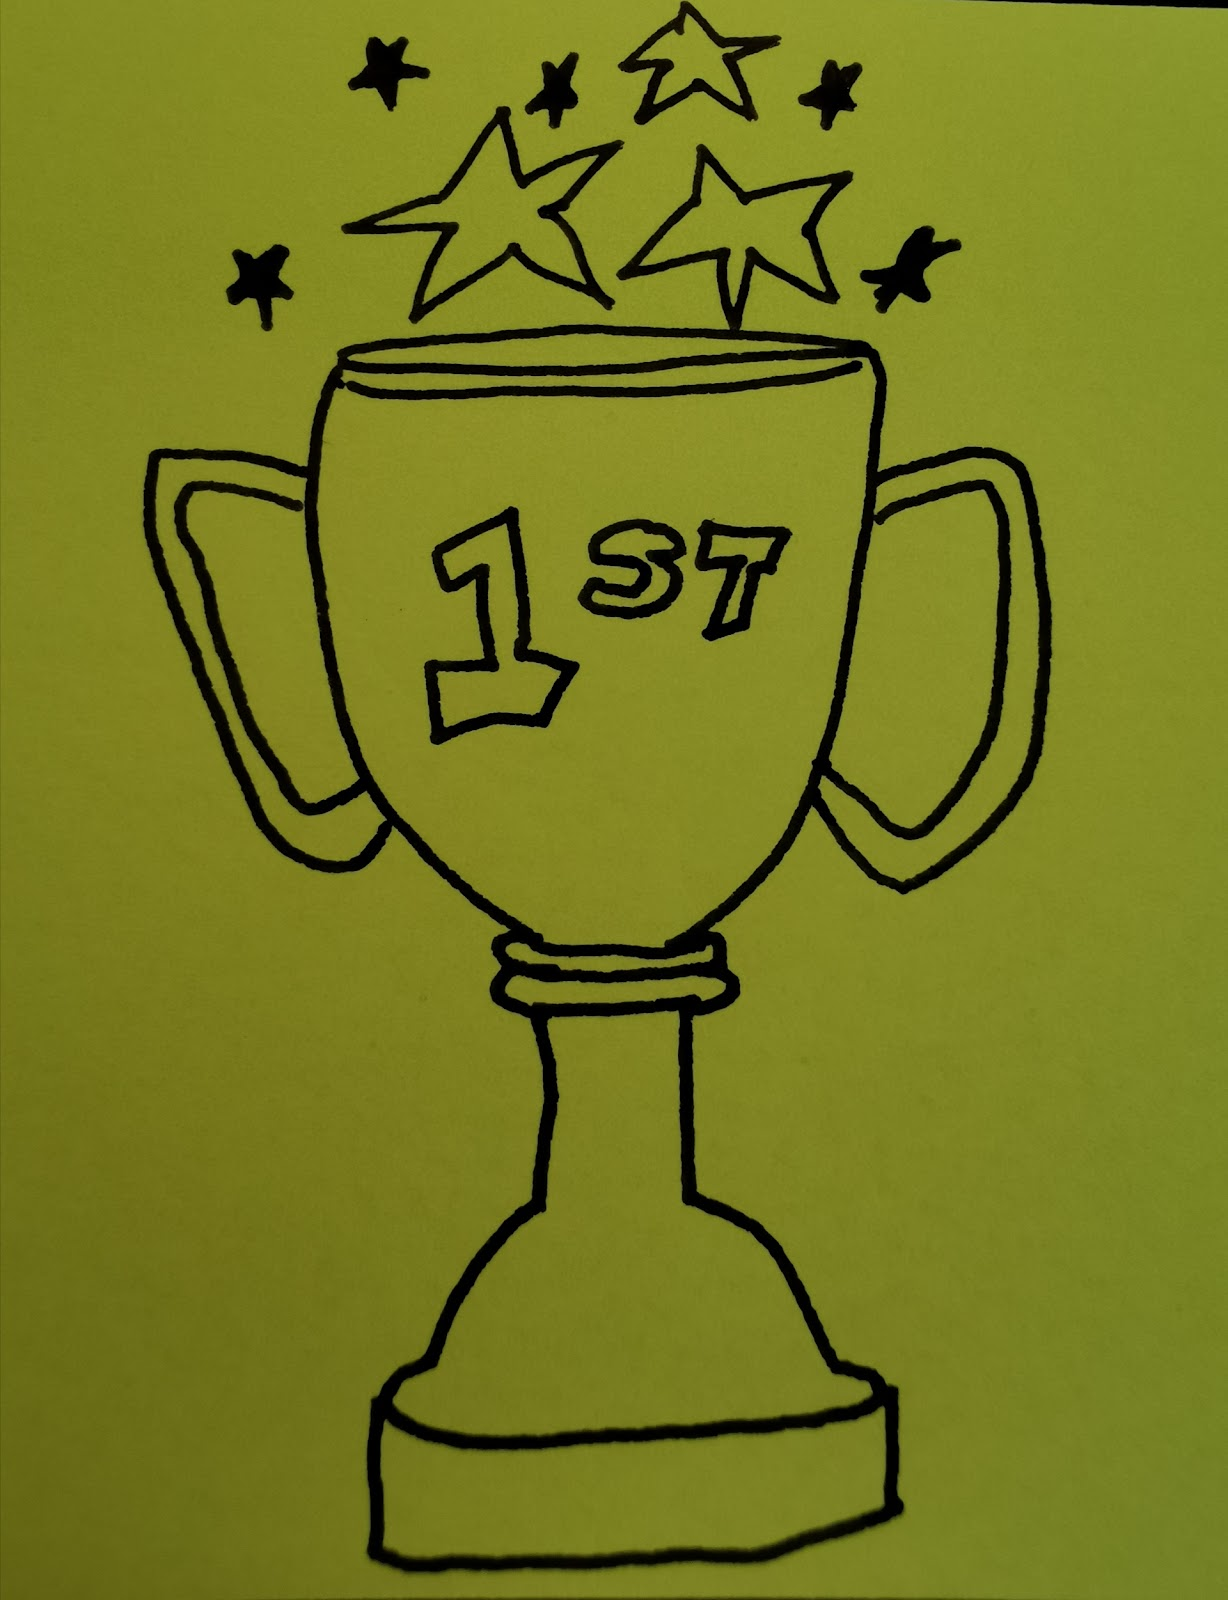 trophy image drawing